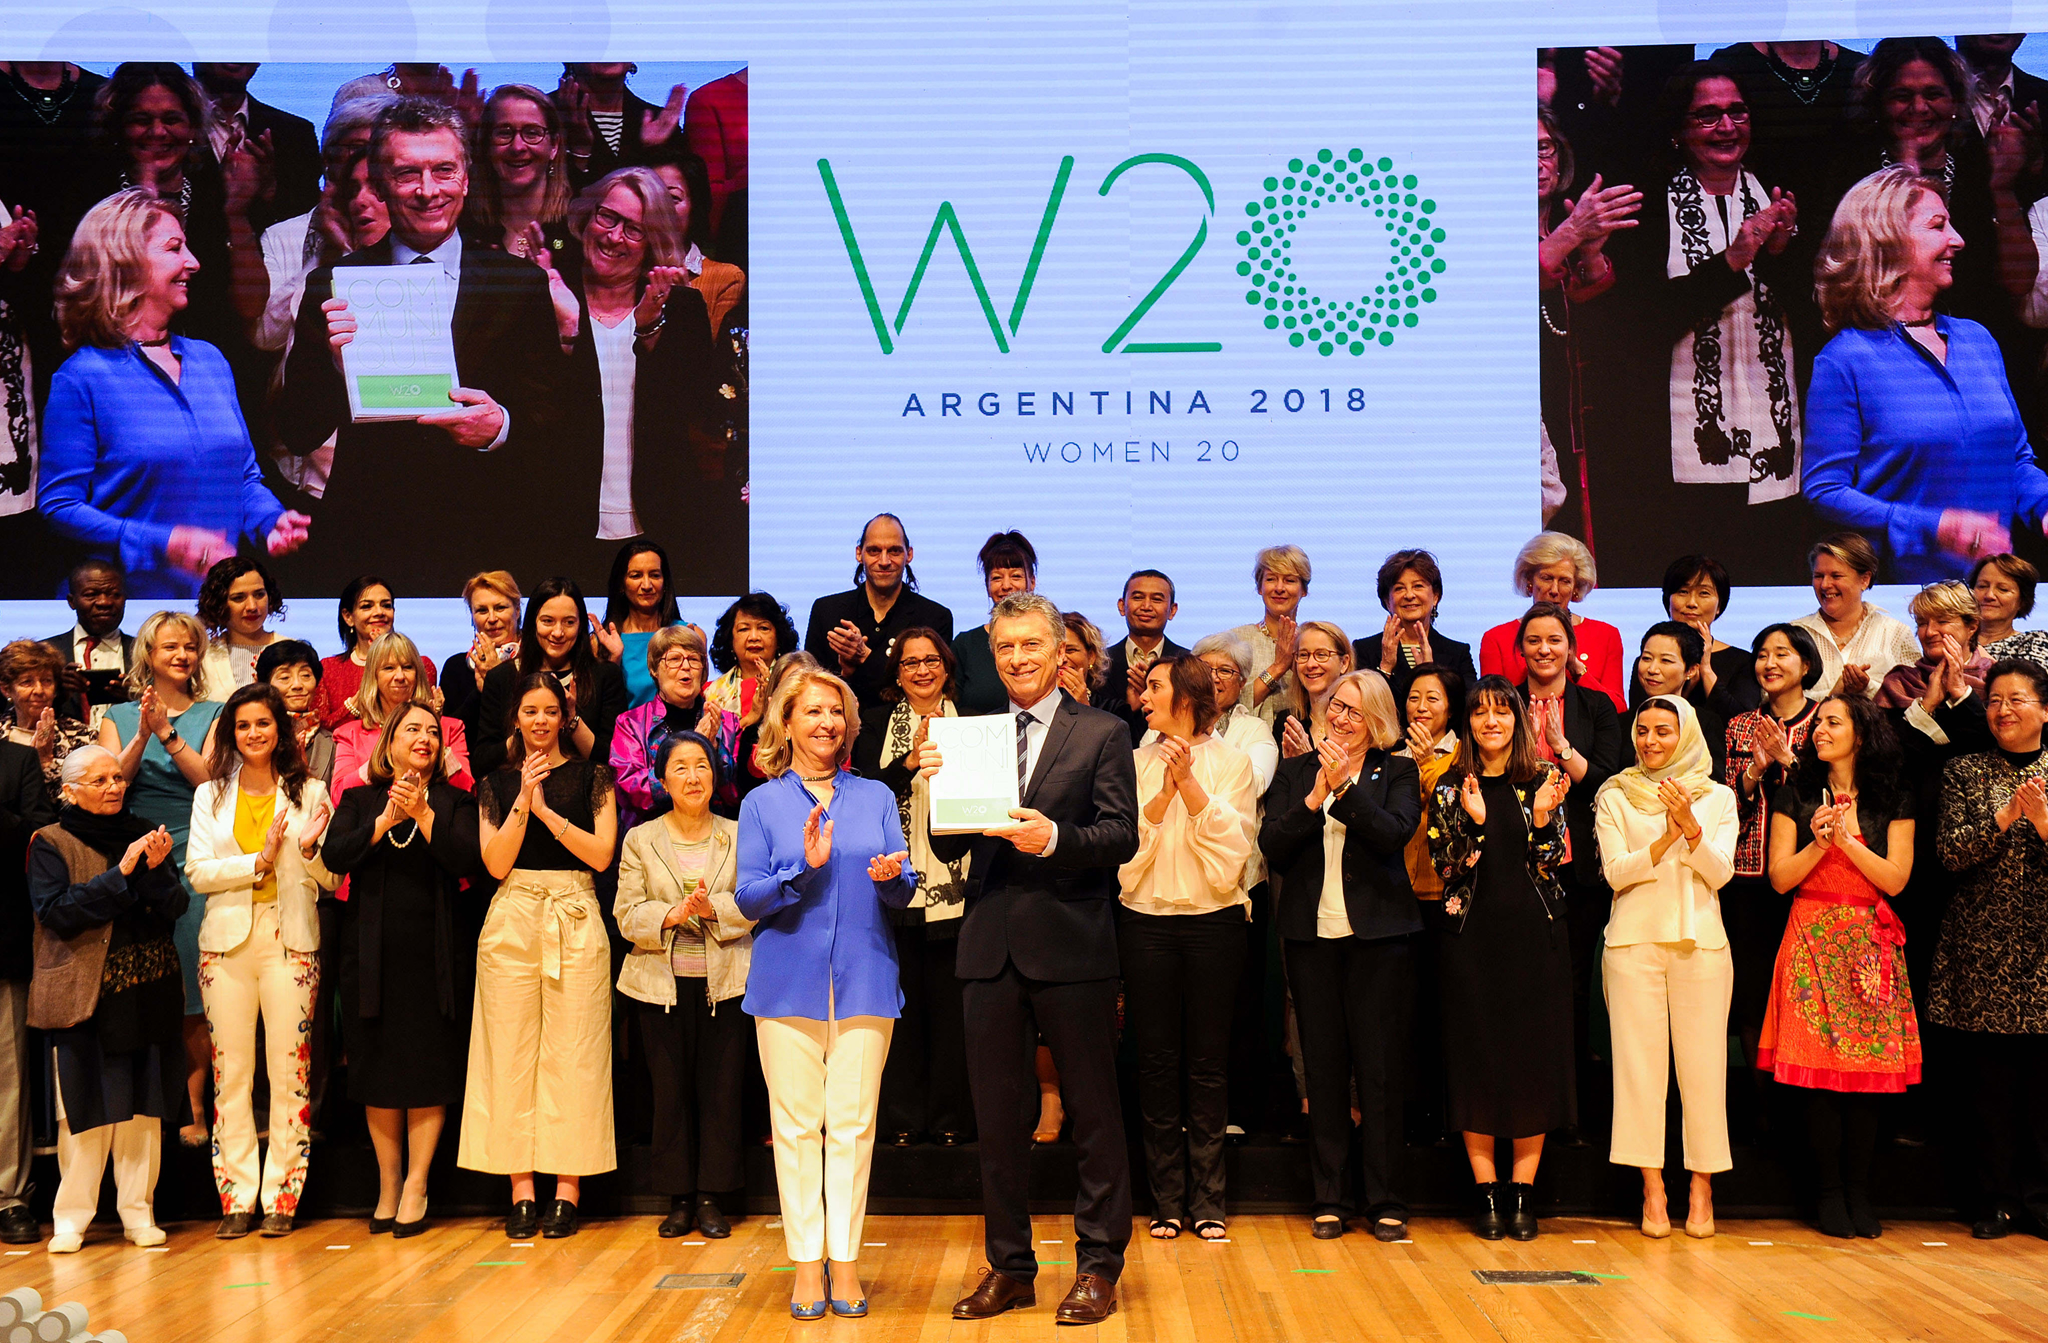 Women20 Summit 2018 – Communiqué finalized